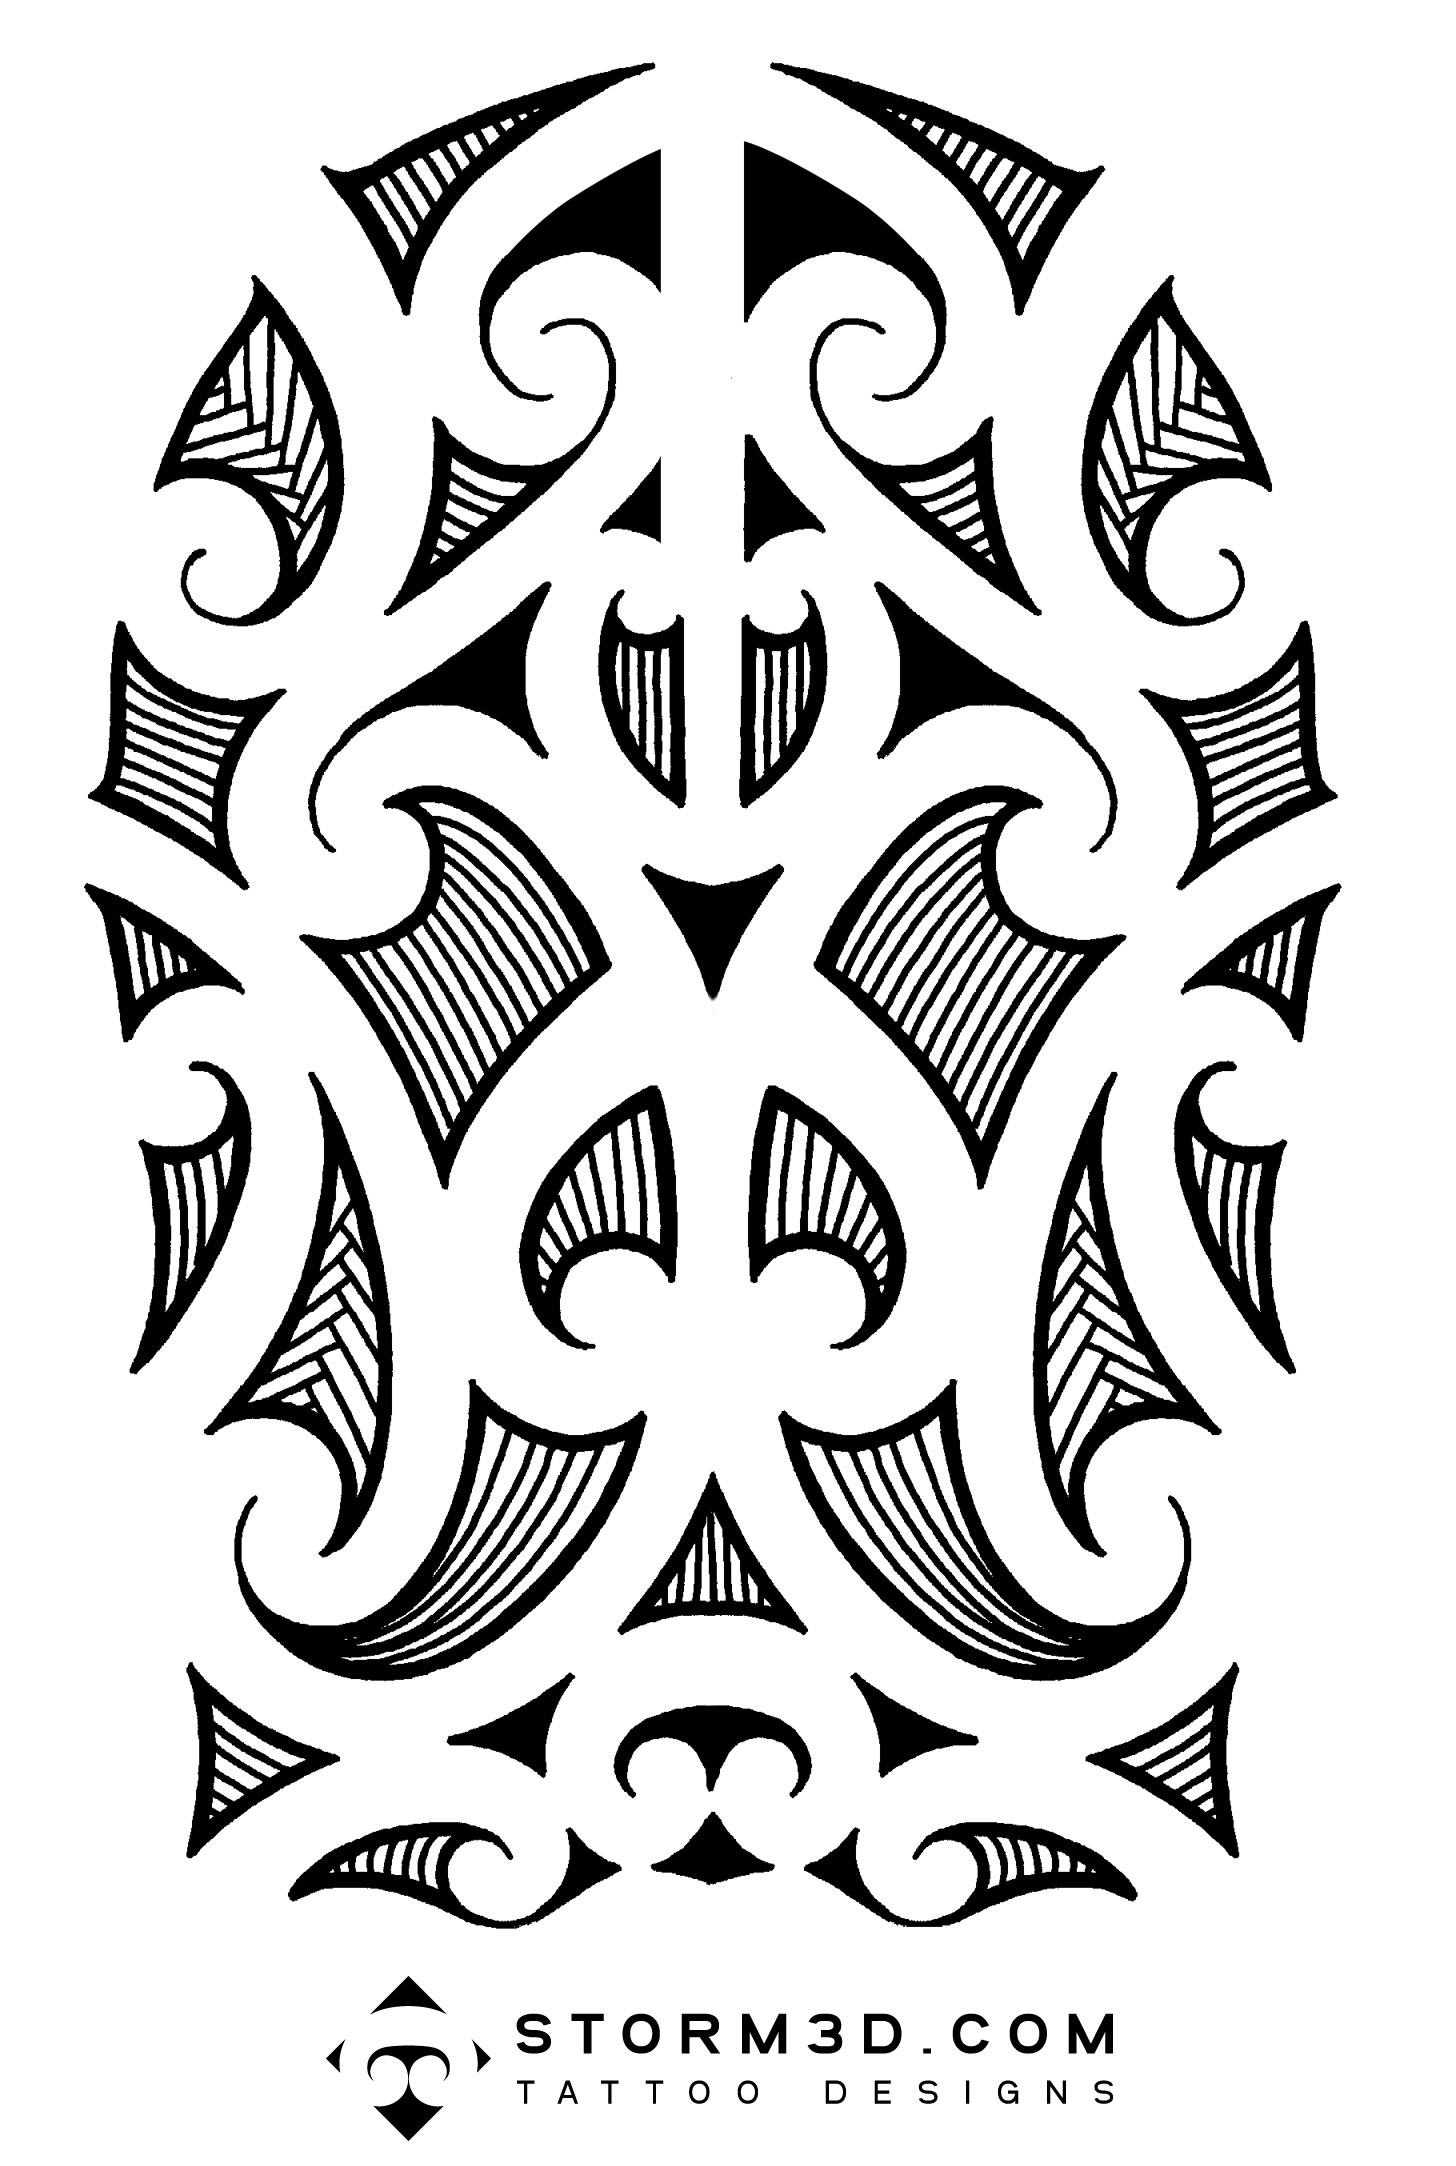 Maori, Samoan and Polynesian inspired tattoo designs, hand drawn ...